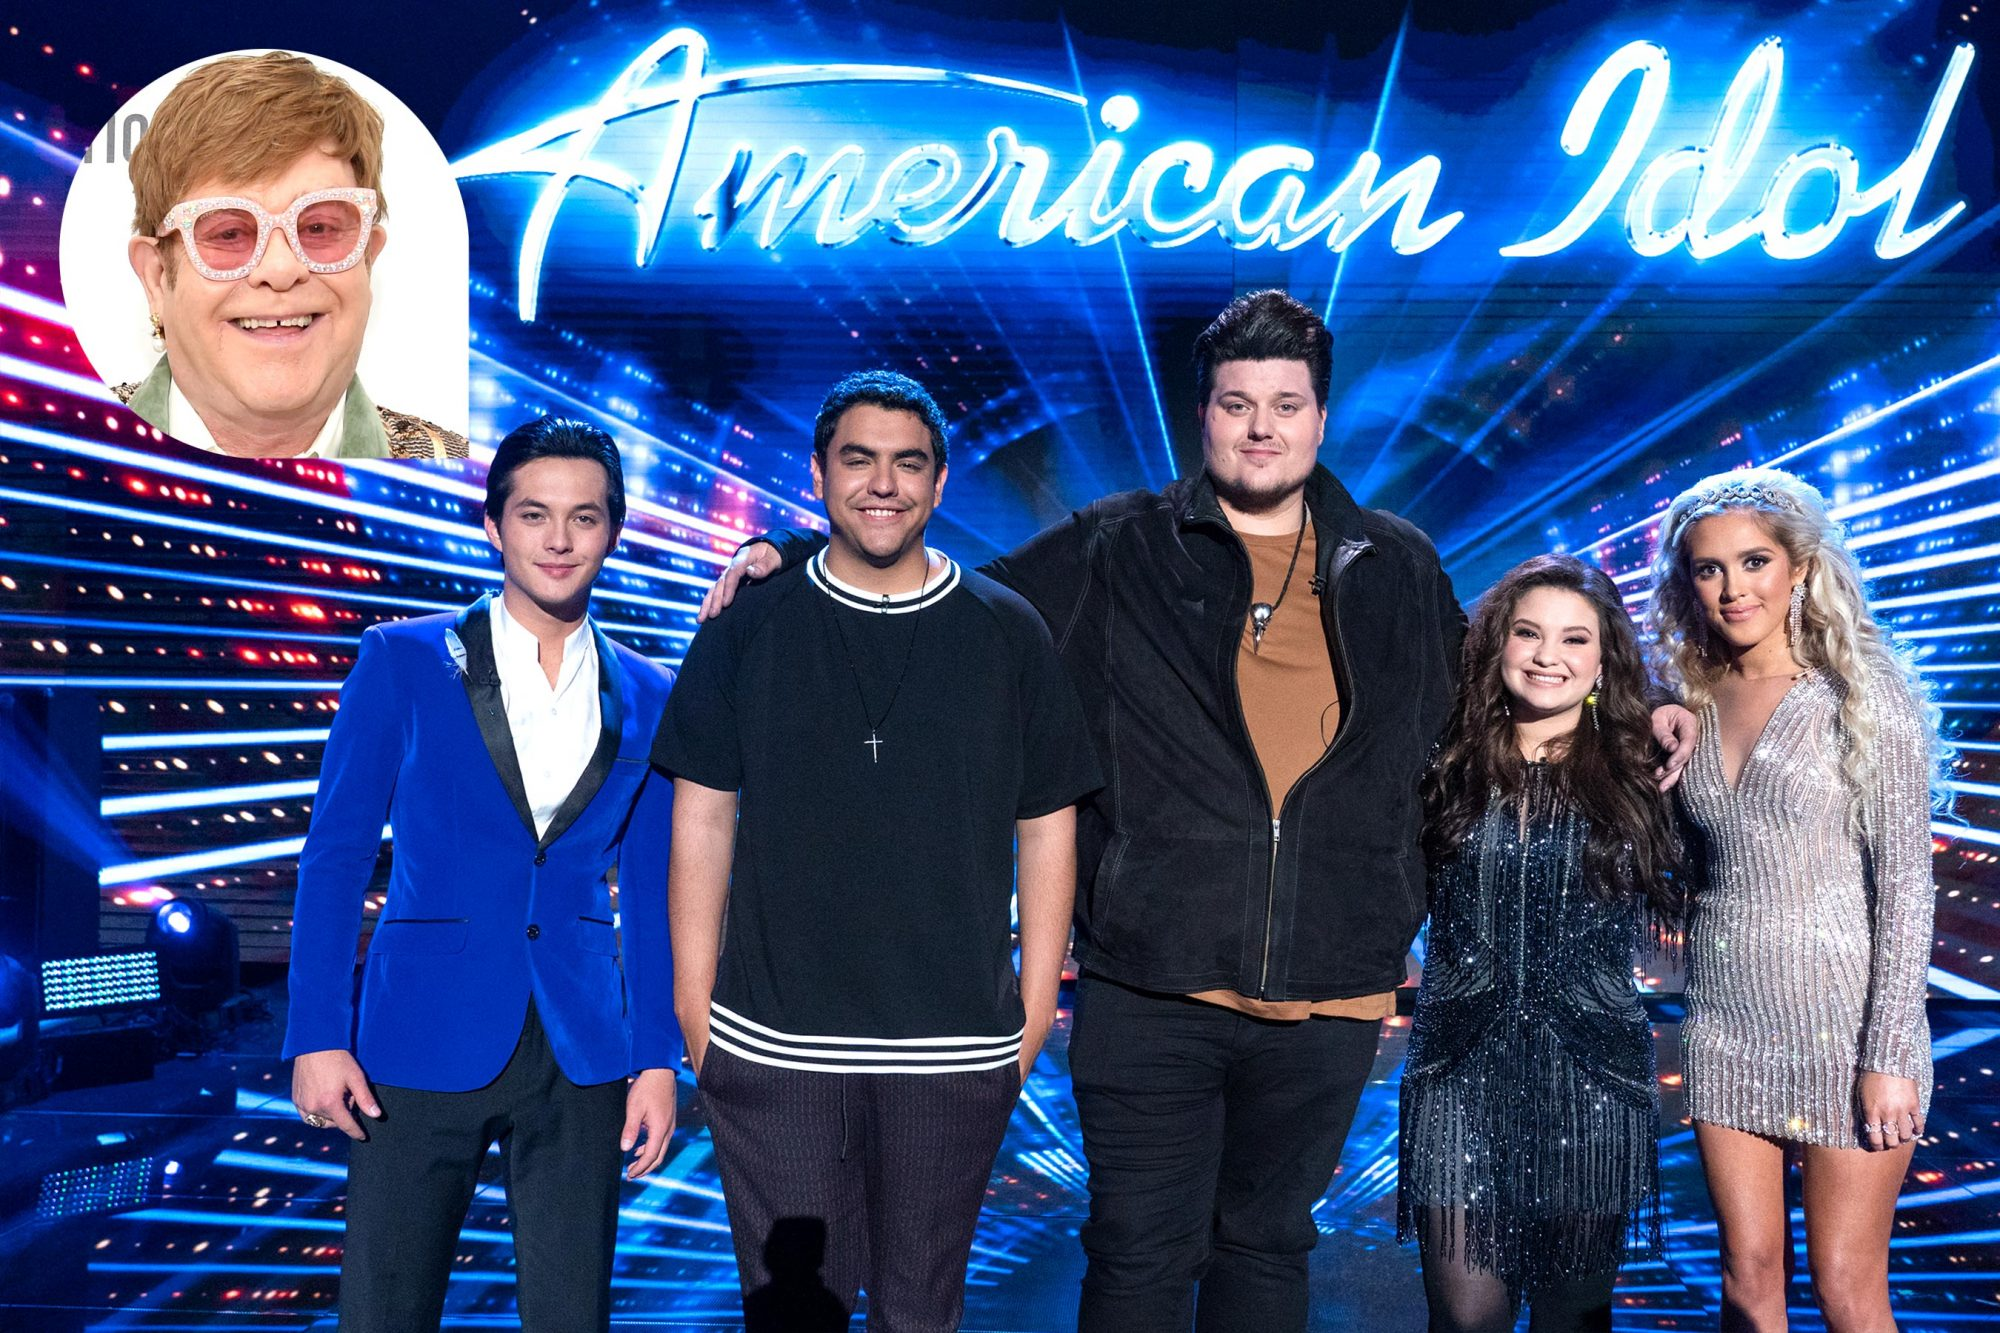 "AMERICAN IDOL -""216 (Woodstock and Show Stoppers)"" - The stakes are high as the remaining ""American Idol"" finalists sing their hearts out in hopes of winning America's vote and advancing to the next phase of the competition. In this episode, each contestant will perform one inspirationally powerful ""showstopper"" song, with the help of former Idol hopeful and now GRAMMY® Award-winning artist, Lauren Daigle, who serves as celebrity guest mentor. Each finalist will also take on a song performed at the famed Woodstock music festival in 1969, which remains one of the most historic moments in popular music history. Sunday night's show will be the final opportunity for the judges to use their coveted save on one contestant this season. Last season's second runner-up and powerhouse vocalist, Gabby Barrett, returns to the Idol stage to perform her latest song, ""I Hope,"" claiming her the No. 1 spot on Radio Disney Country's Top 50 Chart and continuing to rise to the Top 3 on SiriusXM's ""The Highway."" The journey to find the next superstar continues SUNDAY, MAY 5 (8:00-10:01 p.m. EDT/5:00-7:01 p.m. PDT), on The ABC Television Network. (ABC/Eric McCandless) LAINE HARDY, ALEJANDRO ARANDA, WADE COTA, MADISON VANDENBURG, LACI KAYE BOOTH WEST HOLLYWOOD, CA - FEBRUARY 24: Sir Elton John attends the 27th annual Elton John AIDS Foundation Academy Awards Viewing Party sponsored by IMDb and Neuro Drinks celebrating EJAF and the 91st Academy Awards on February 24, 2019 in West Hollywood, California. (Photo by Michael Kovac/Getty Images for EJAF)"